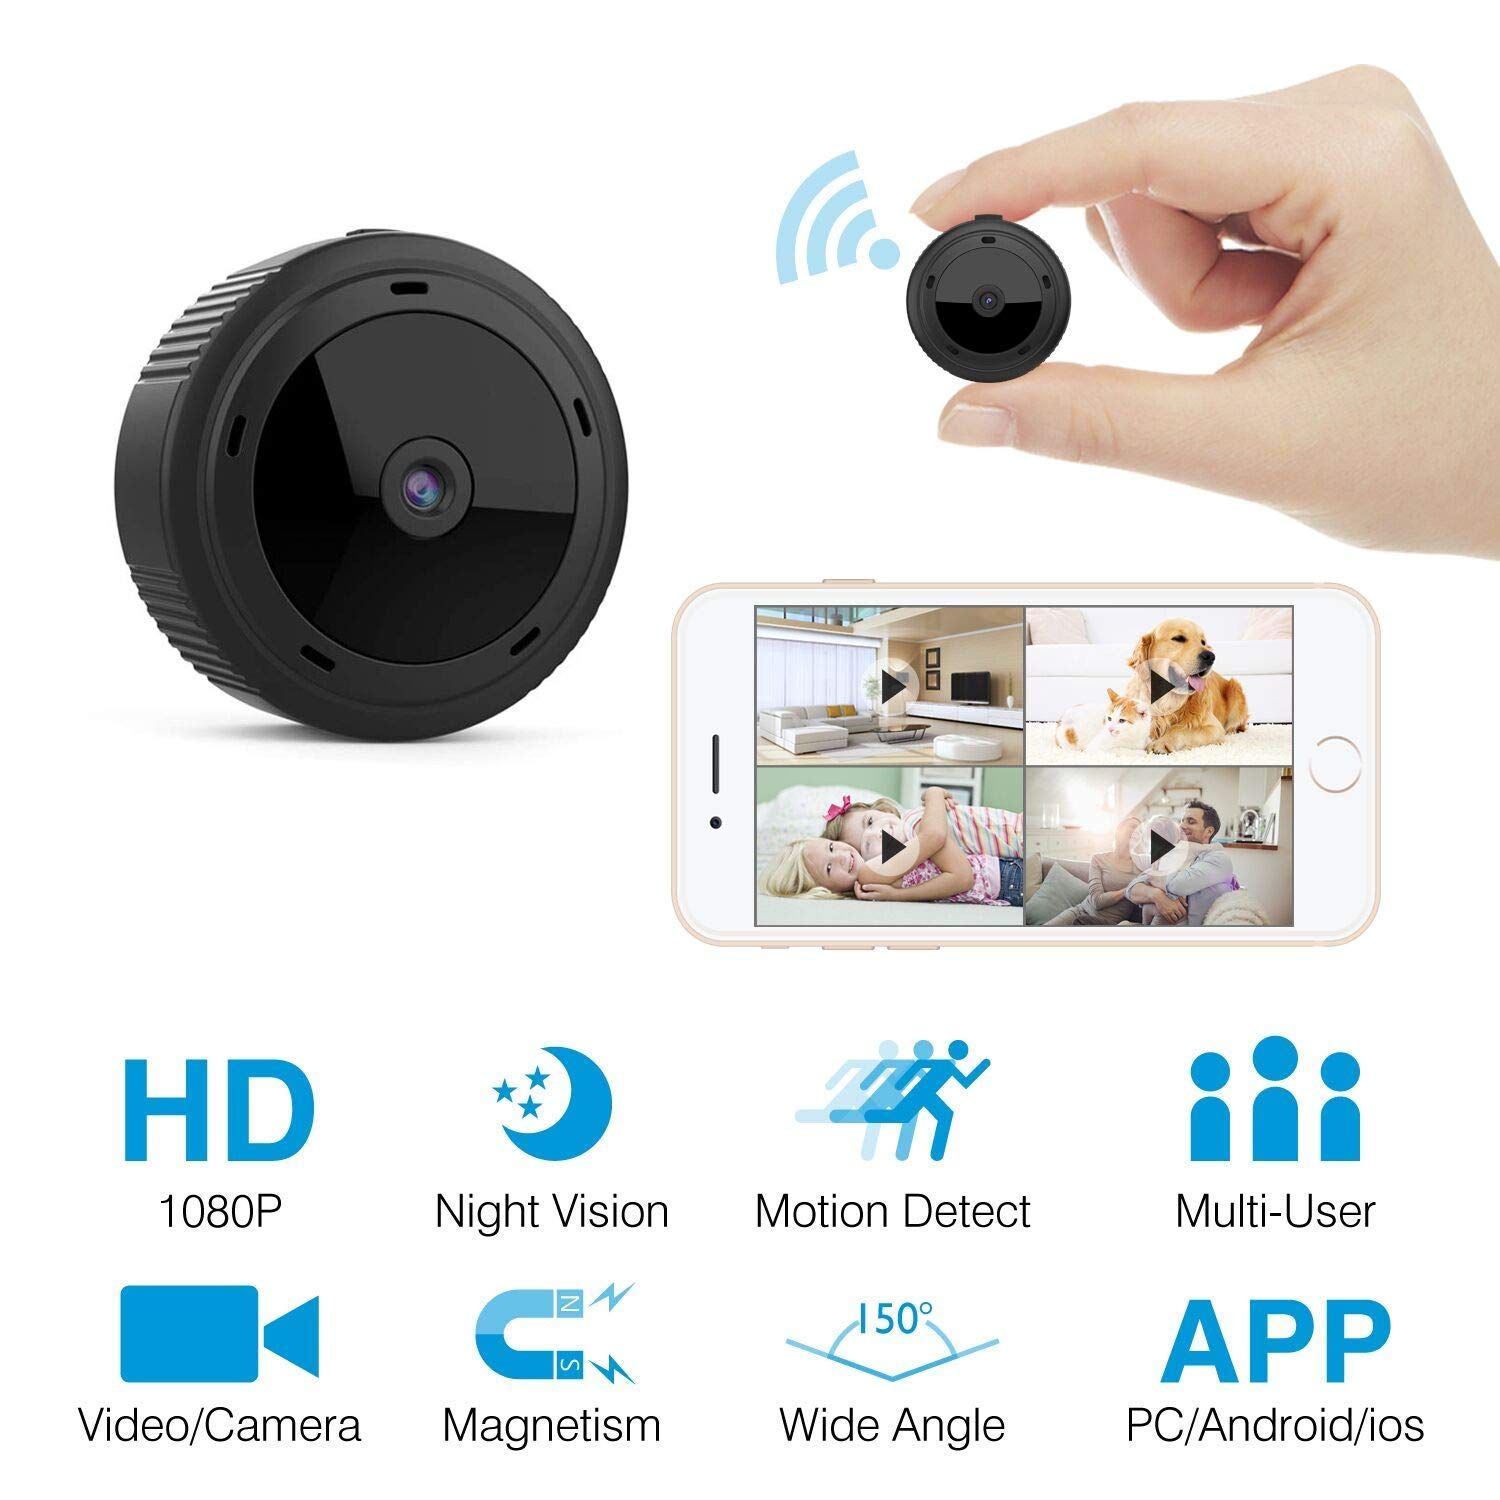 Mini Spy Camera HeysTop WiFi Hidden Camera Spy Cam Remote Small Wireless Camera HD 1080P Home Security Surveillance Cameras Covert Tiny Nanny Cam with Night Vision and Motion Detection by HEYSTOP